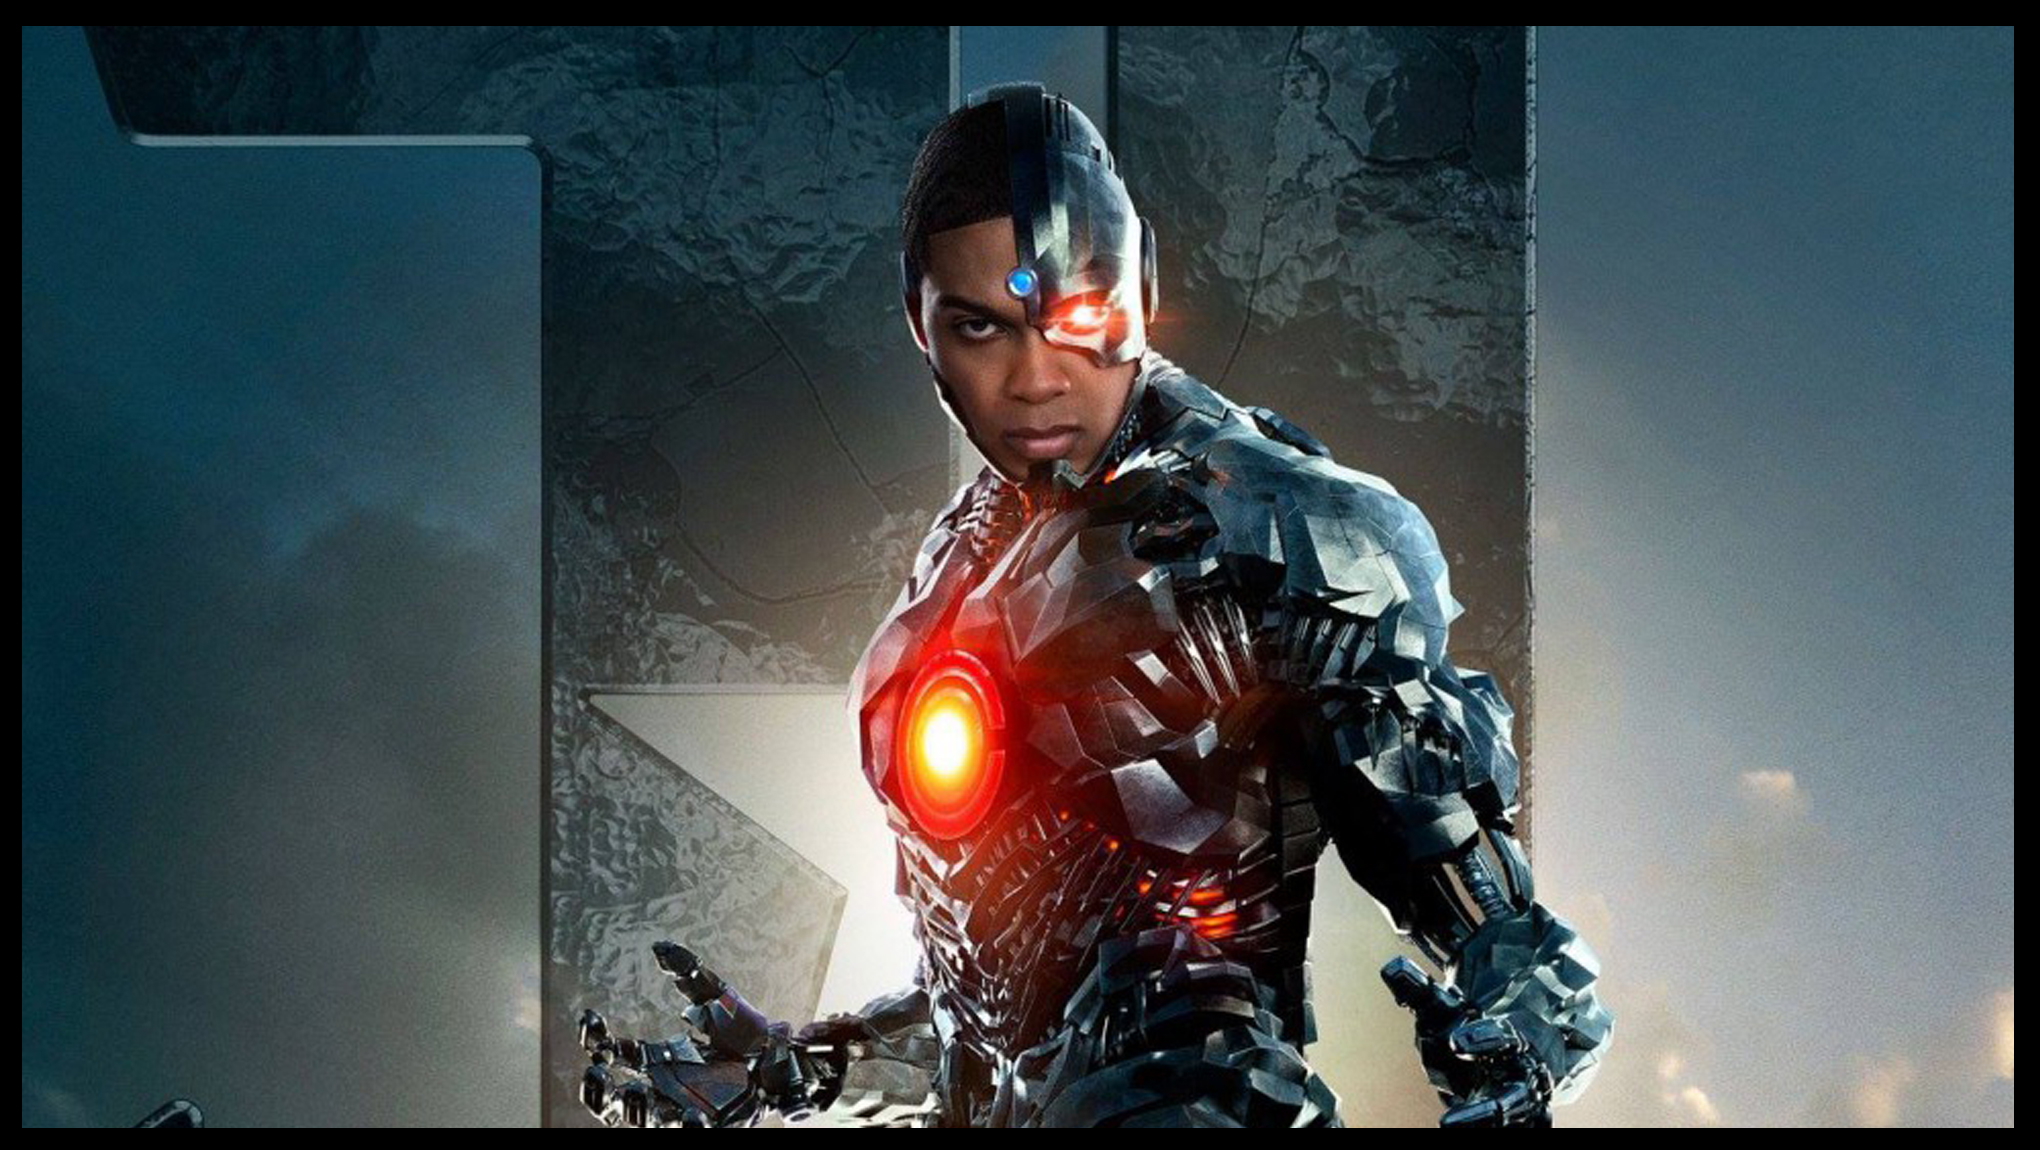 justice league,cyborg,cheyan antwaune gray, cheyan gray, antwaune gray, thelifestyleelite,elite lifestyle, thelifestyleelitedotcom, thelifestyleelite.com,cheyan antwaune gray,fashion,models of thelifestyleelite.com, the life style elite,the lifestyle elite,elite lifestyle,lifestyleelite.com,cheyan gray,TLSElite,TLSElite.com,TLSEliteGaming,TLSElite Gaming